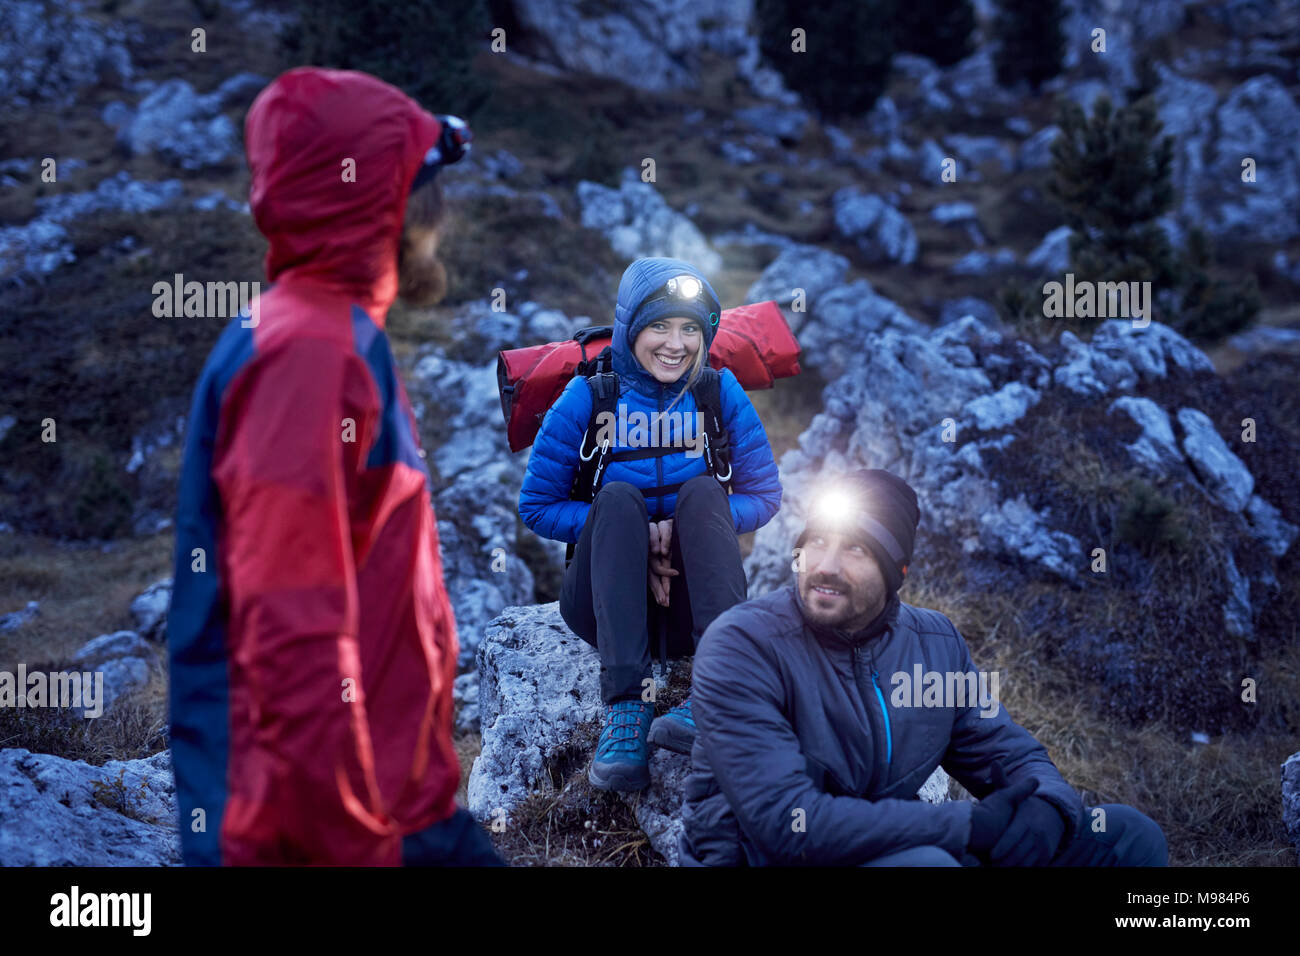 Smiling mountaineers wearing headlamps in the mountains at dusk - Stock Image